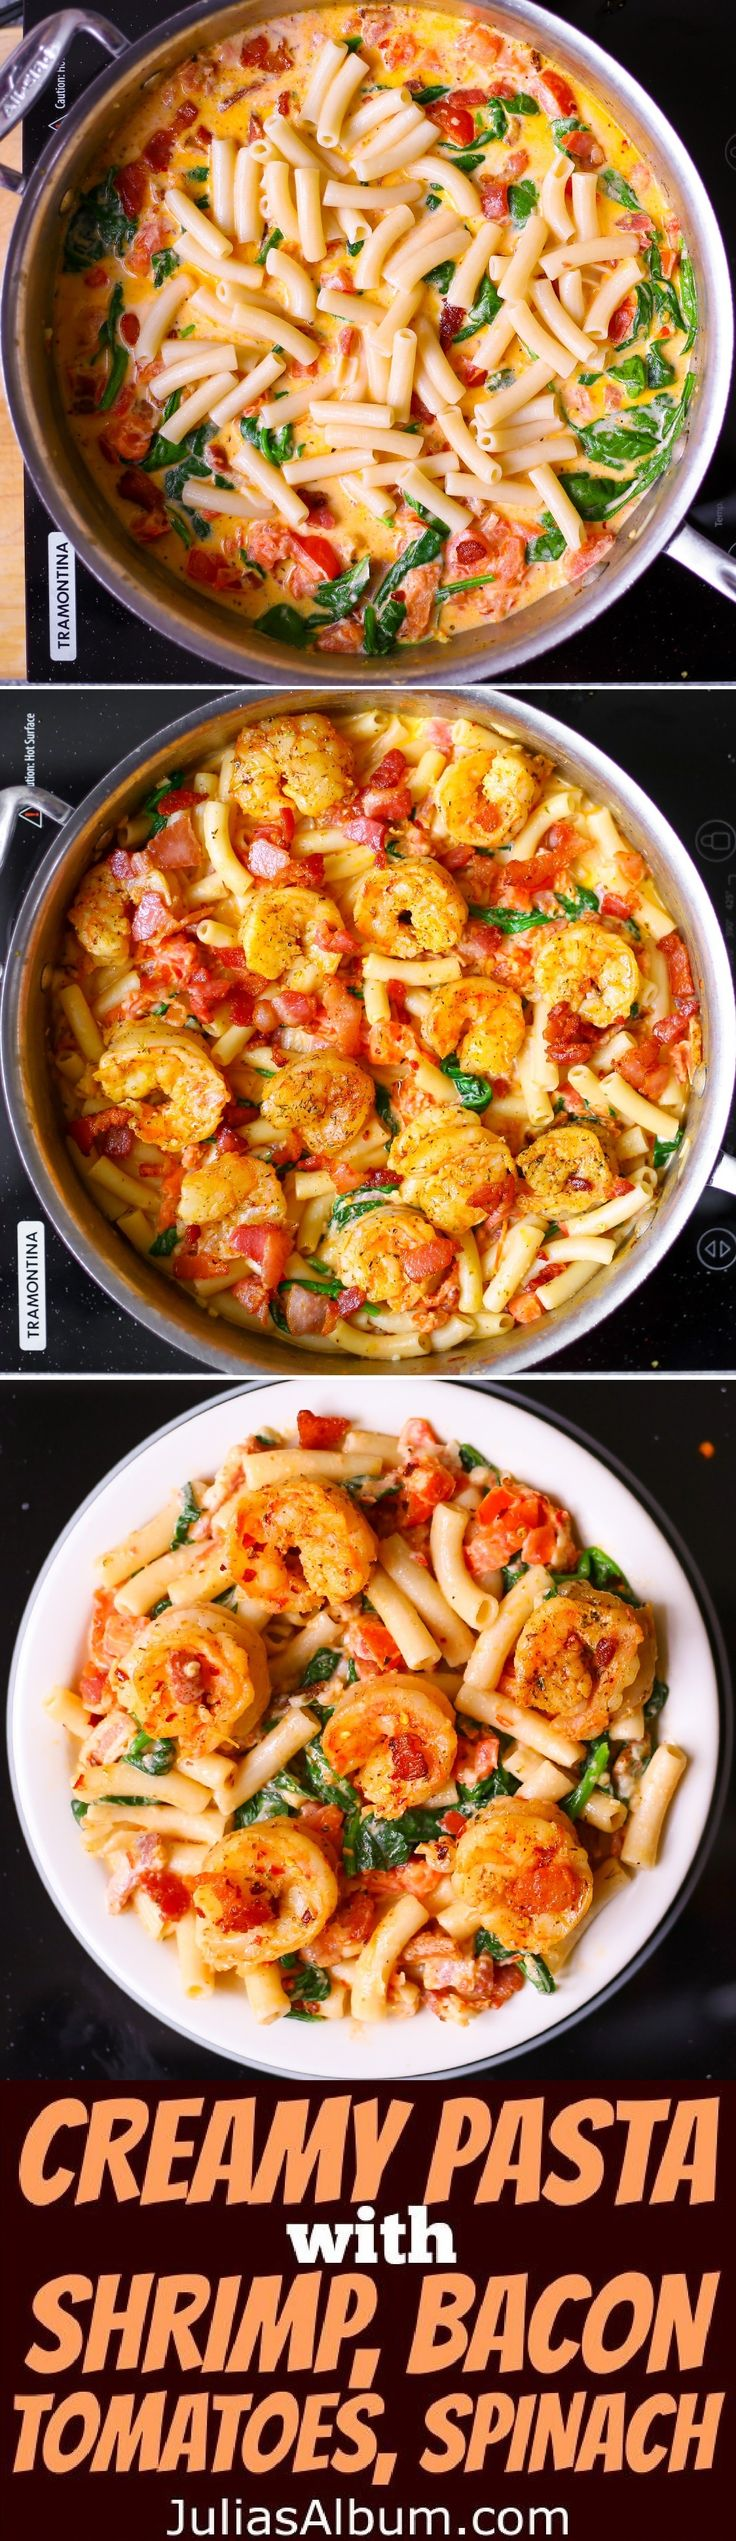 Creamy Pasta with Shrimp, Bacon, Spinach, Tomatoes, Garlic.